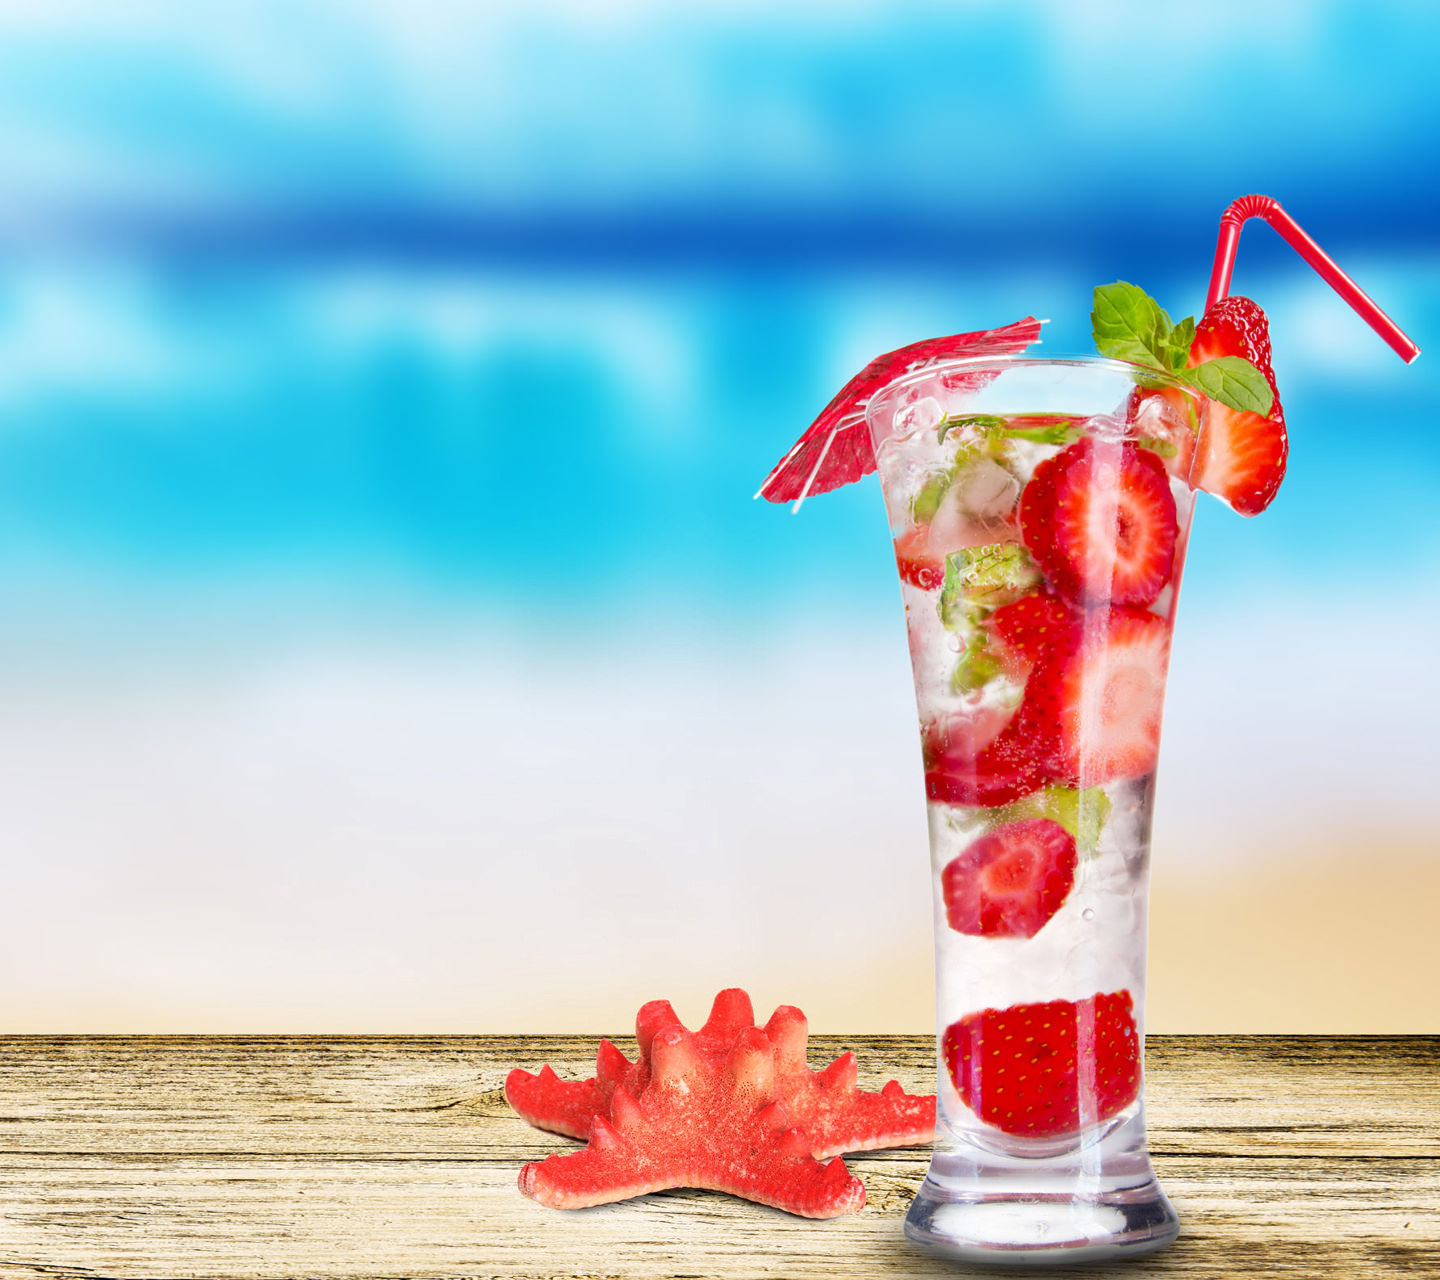 summer drink wallpaper for you